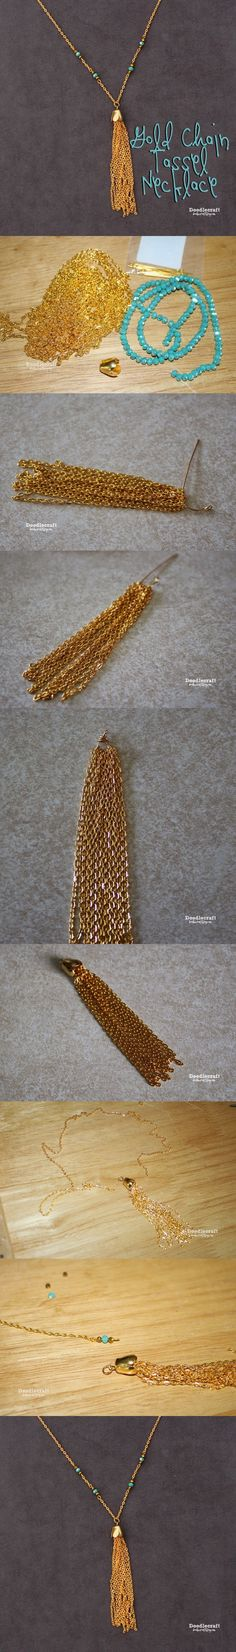 http://blog.pandahall.com/2016/01/easy-tutorial-on-tassel-necklace-with-gold-chain/                                                                                                                                                      Más